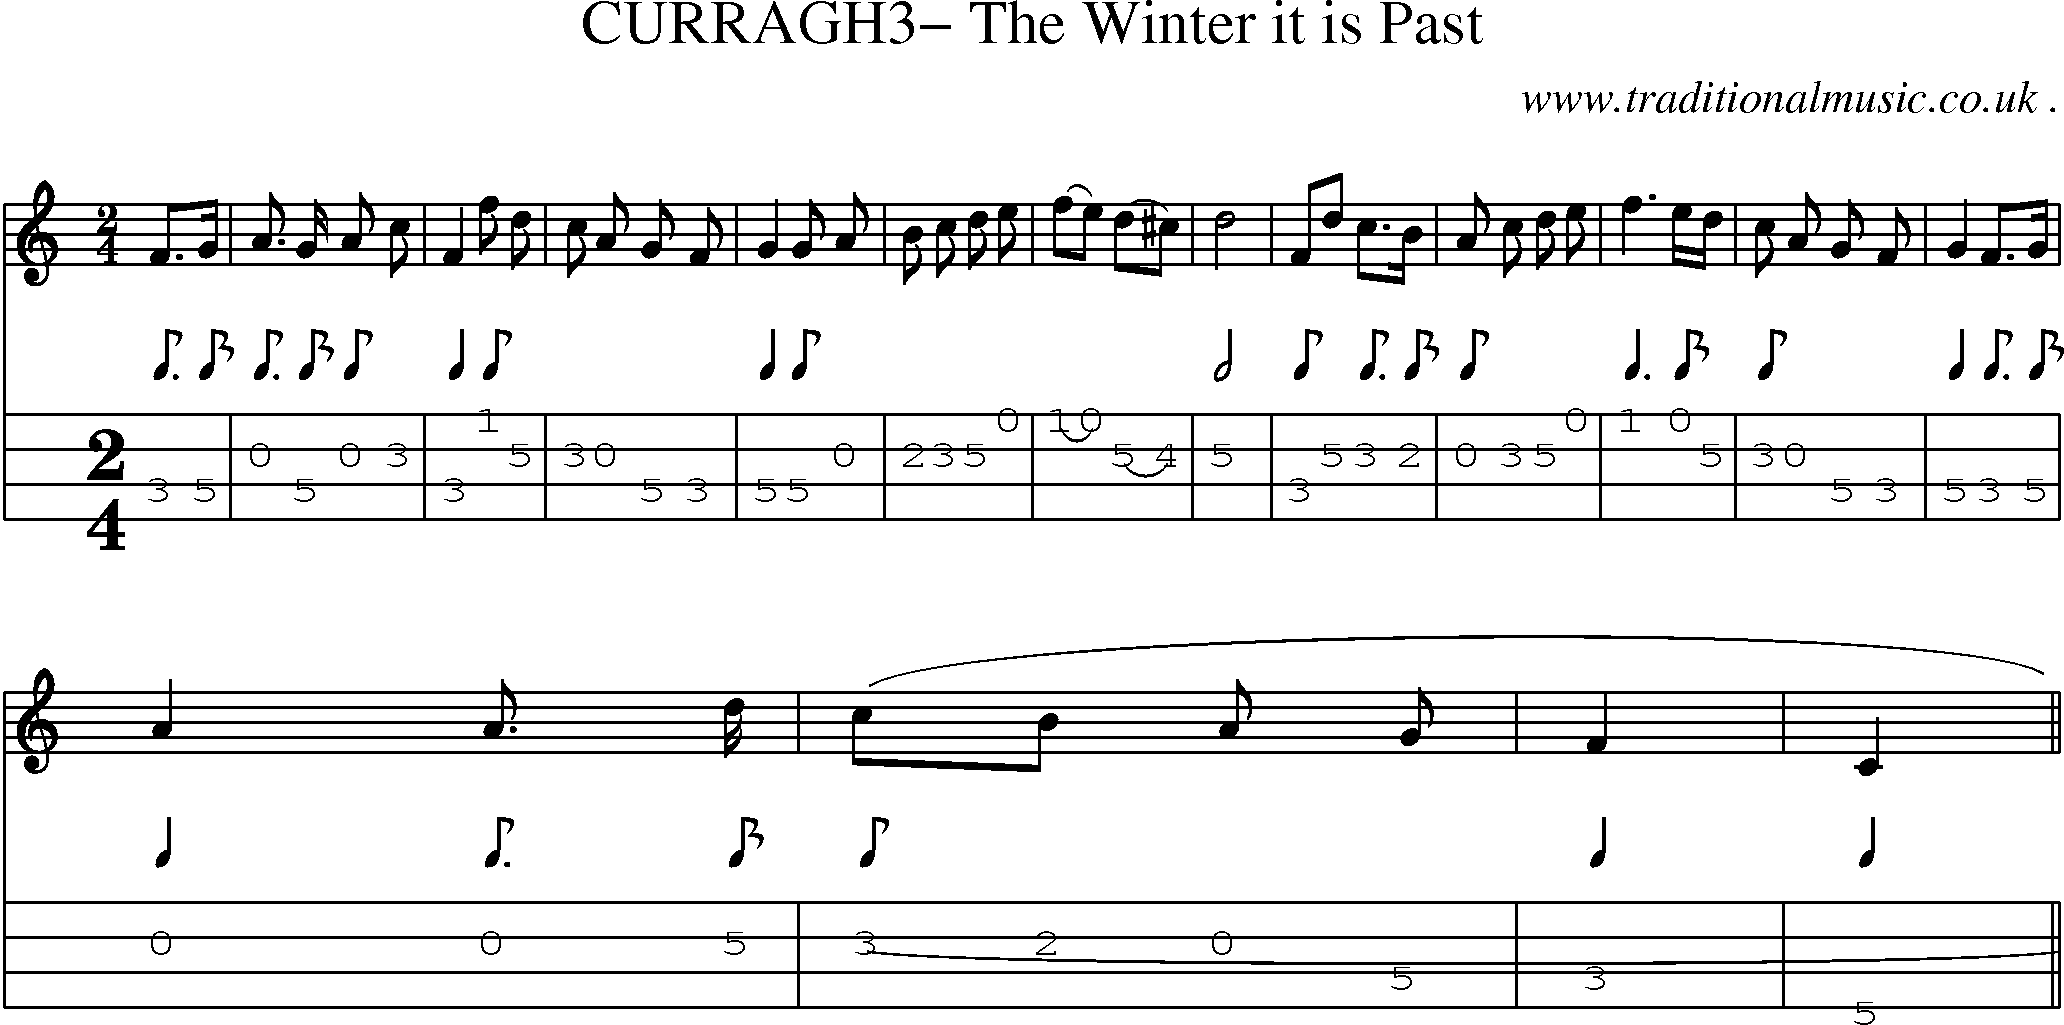 Folk and Traditional Music, Sheet-Music, Mandolin tab, midi, mp3 and PDF for: Curragh3 The ...